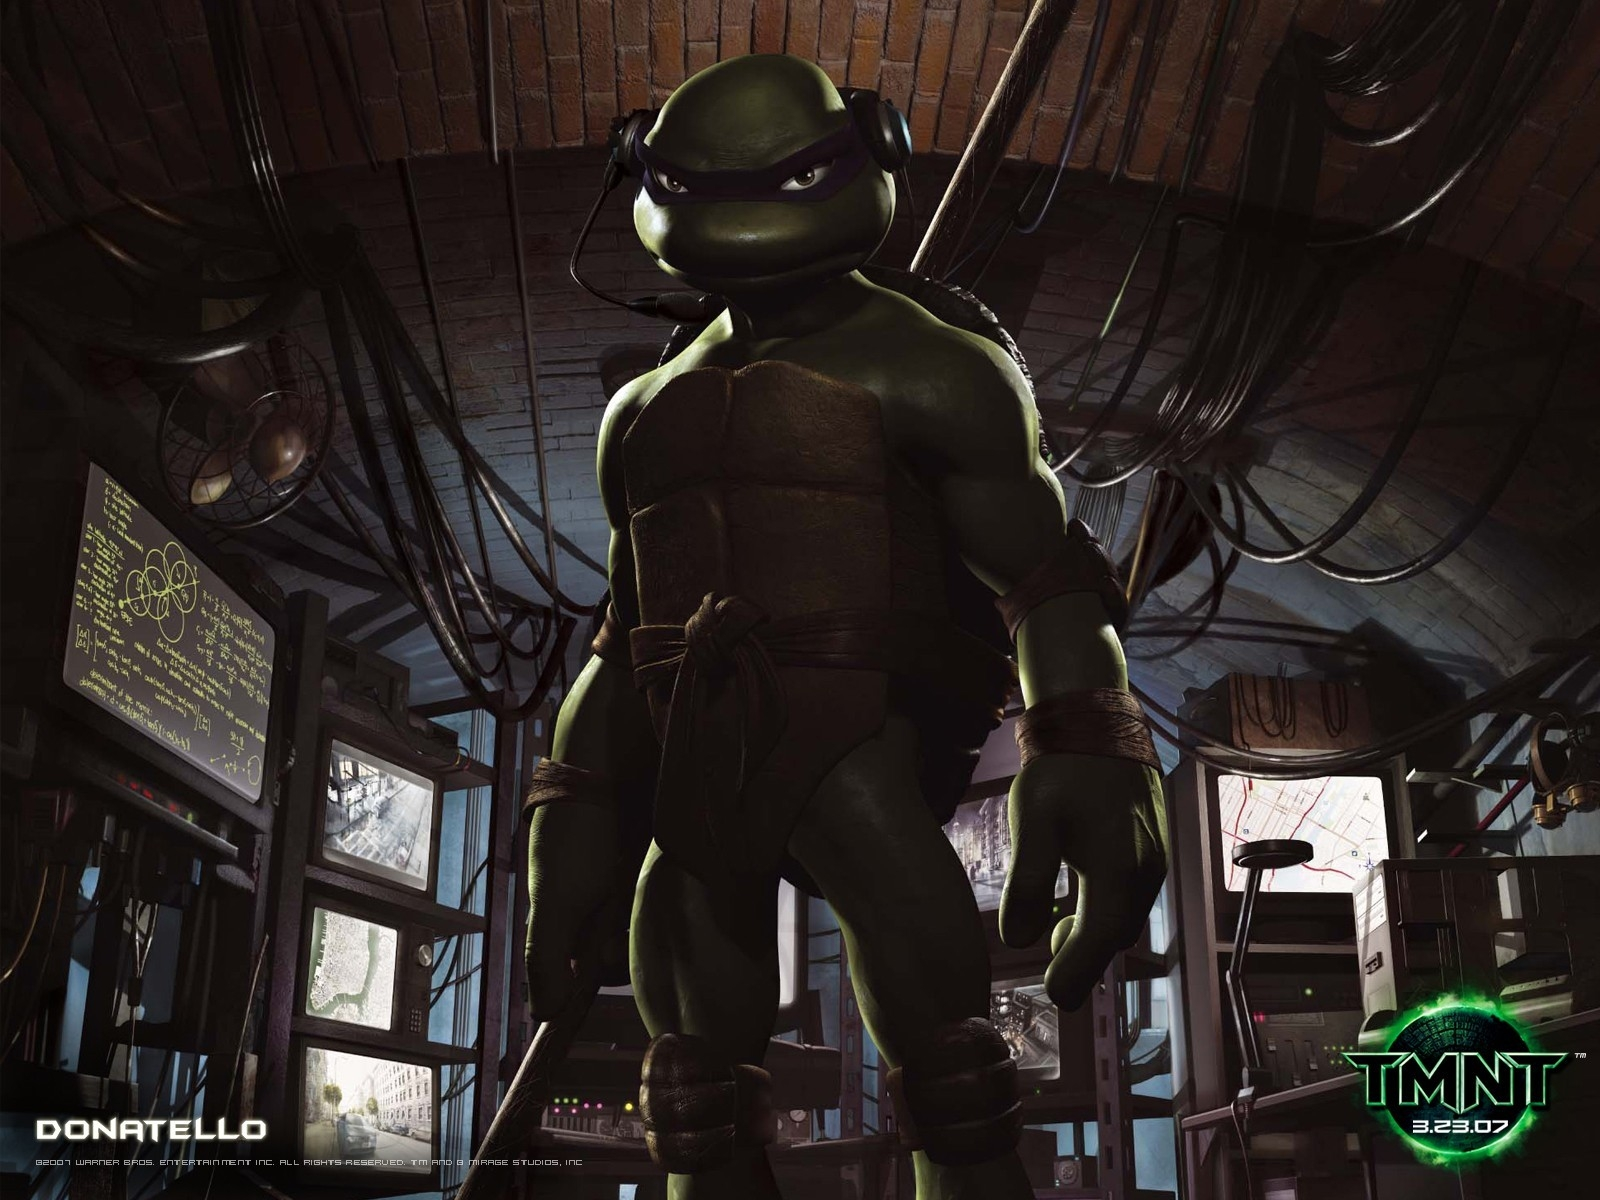 Un wallpaper di Donatello per il film 'Teenage Mutant Ninja Turtles Photo'